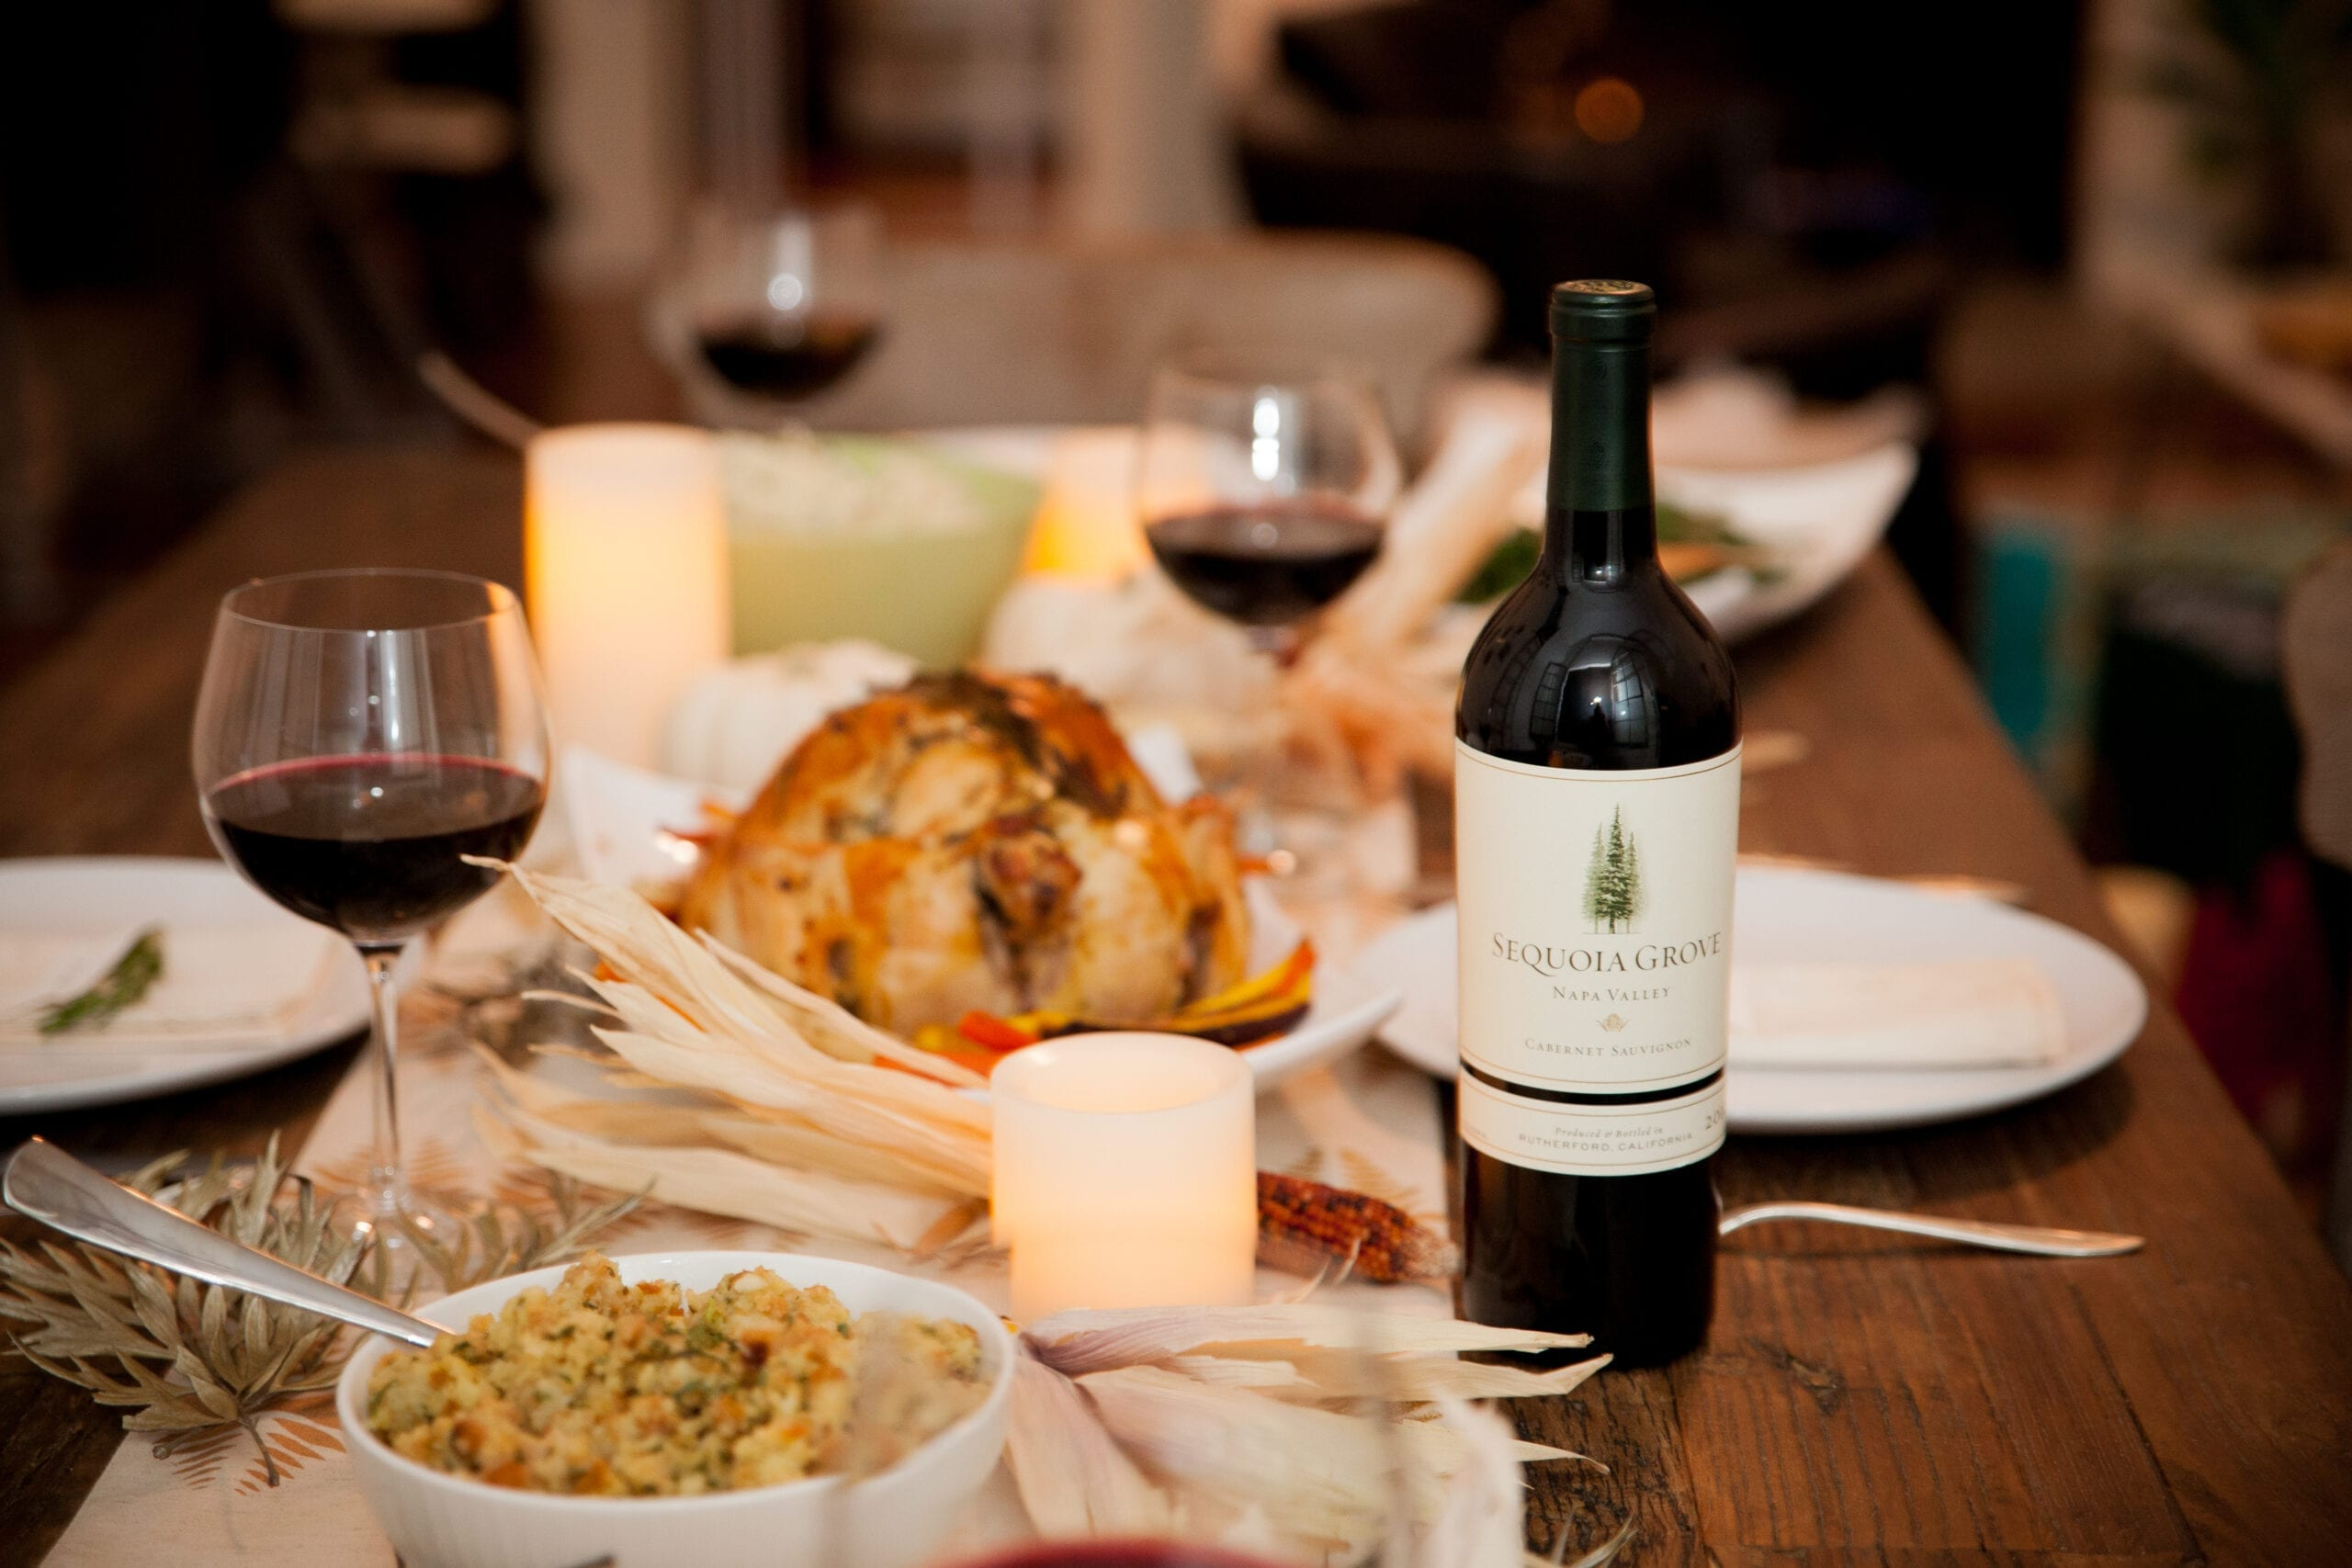 Sequoia Grove Thanksgiving table setting, feast, dinner, wine